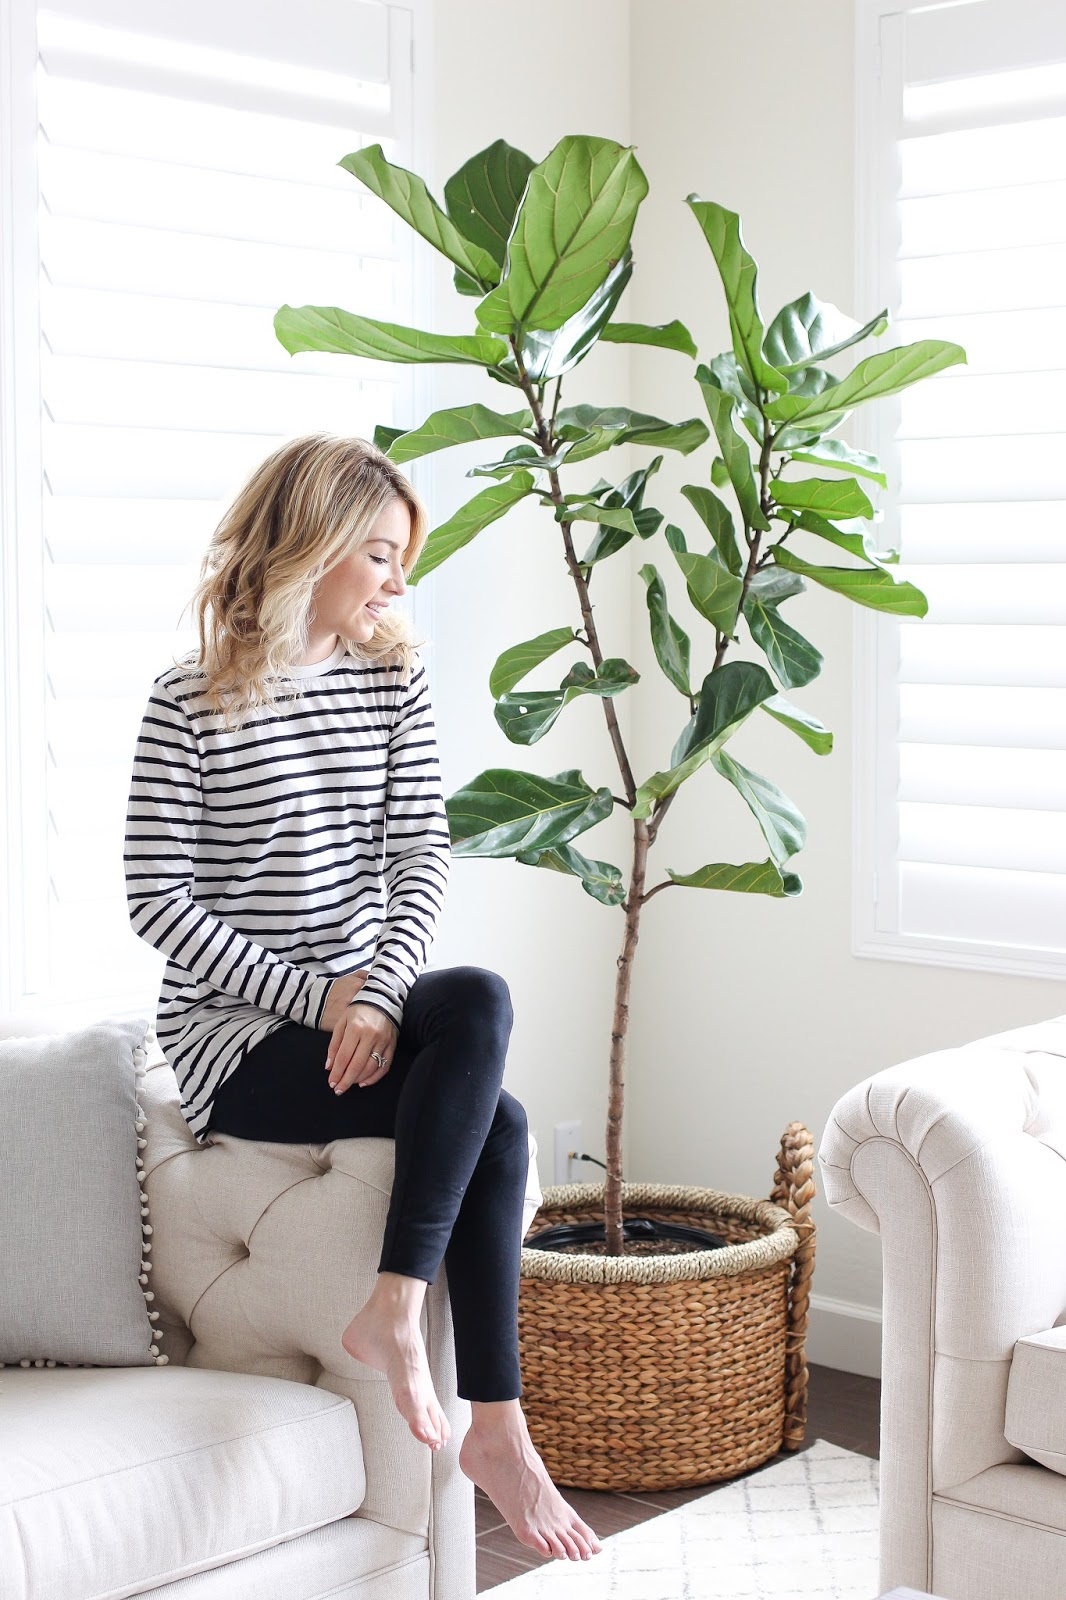 indoor plant - how to care for an indoor plant